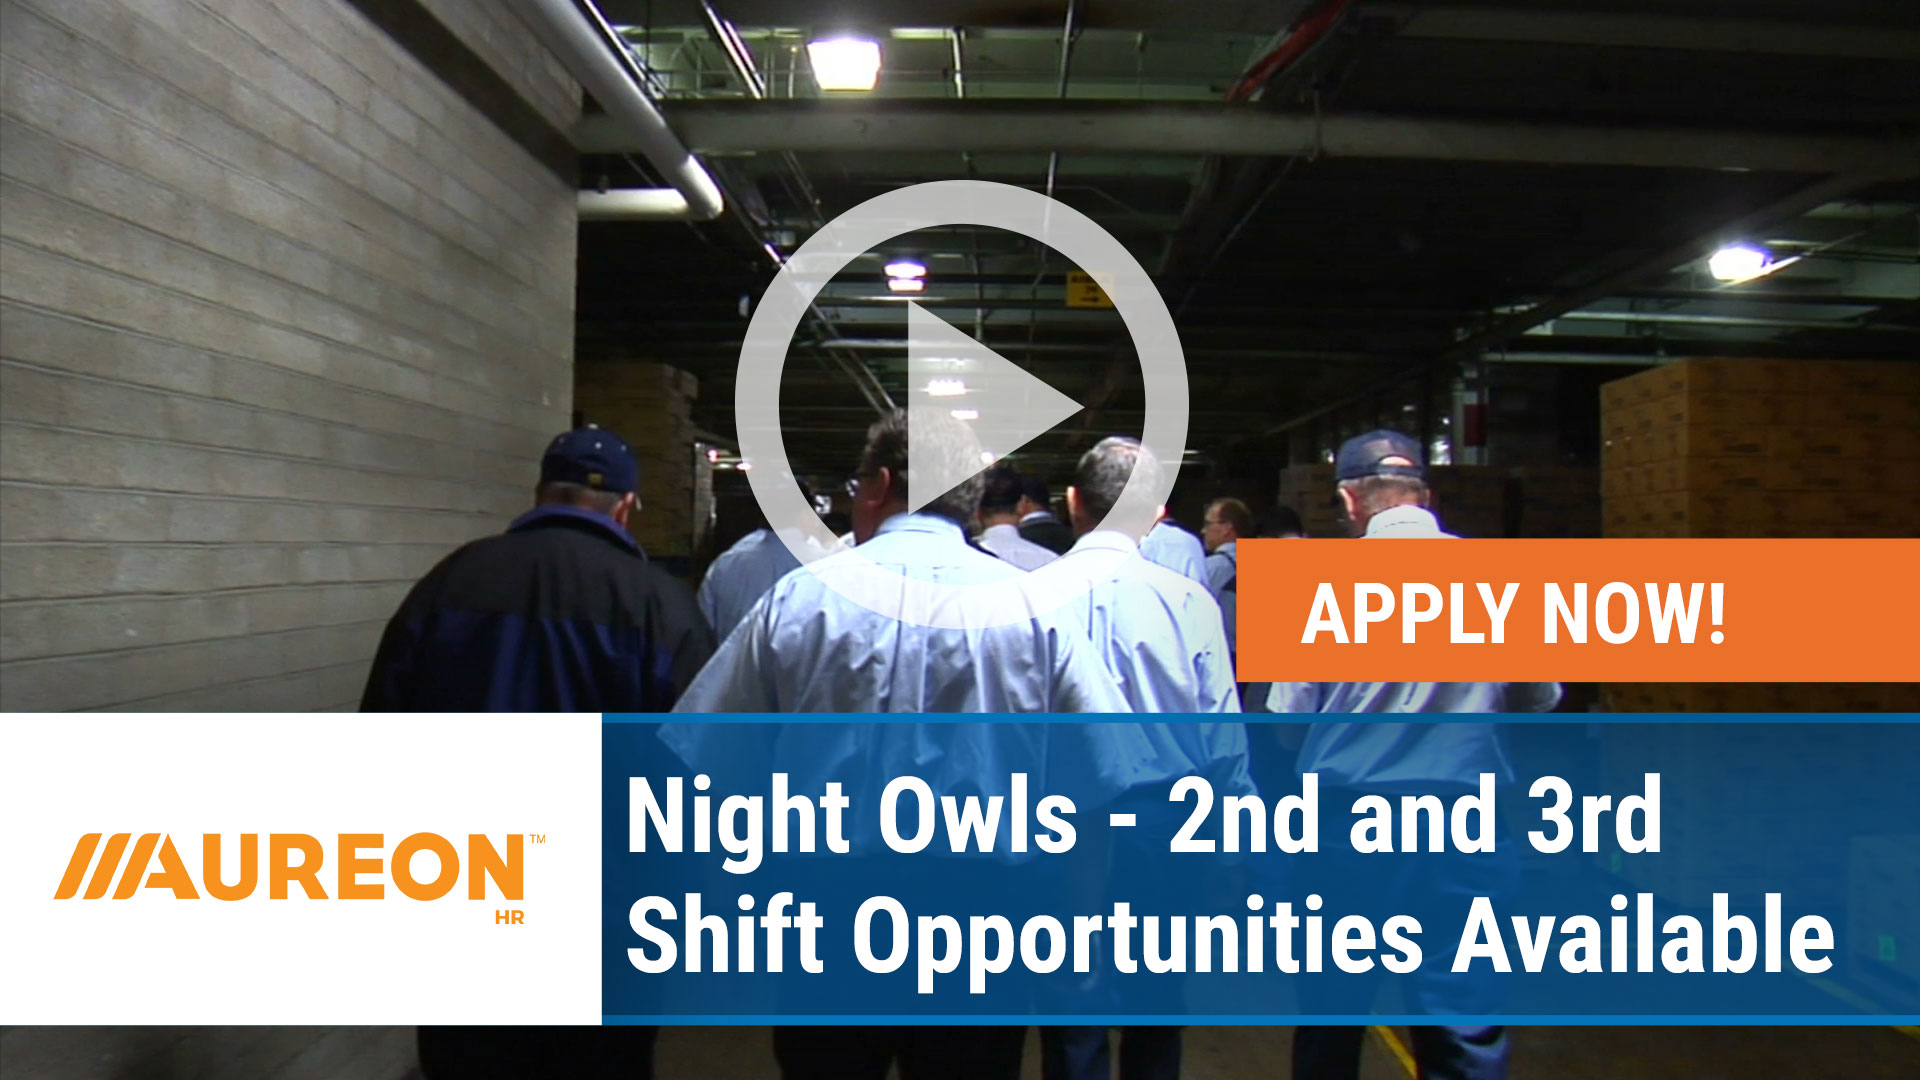 Watch our careers video for available job opening Night Owls - 2nd and 3rd Shift Opportunities Available in Des Moines, IA